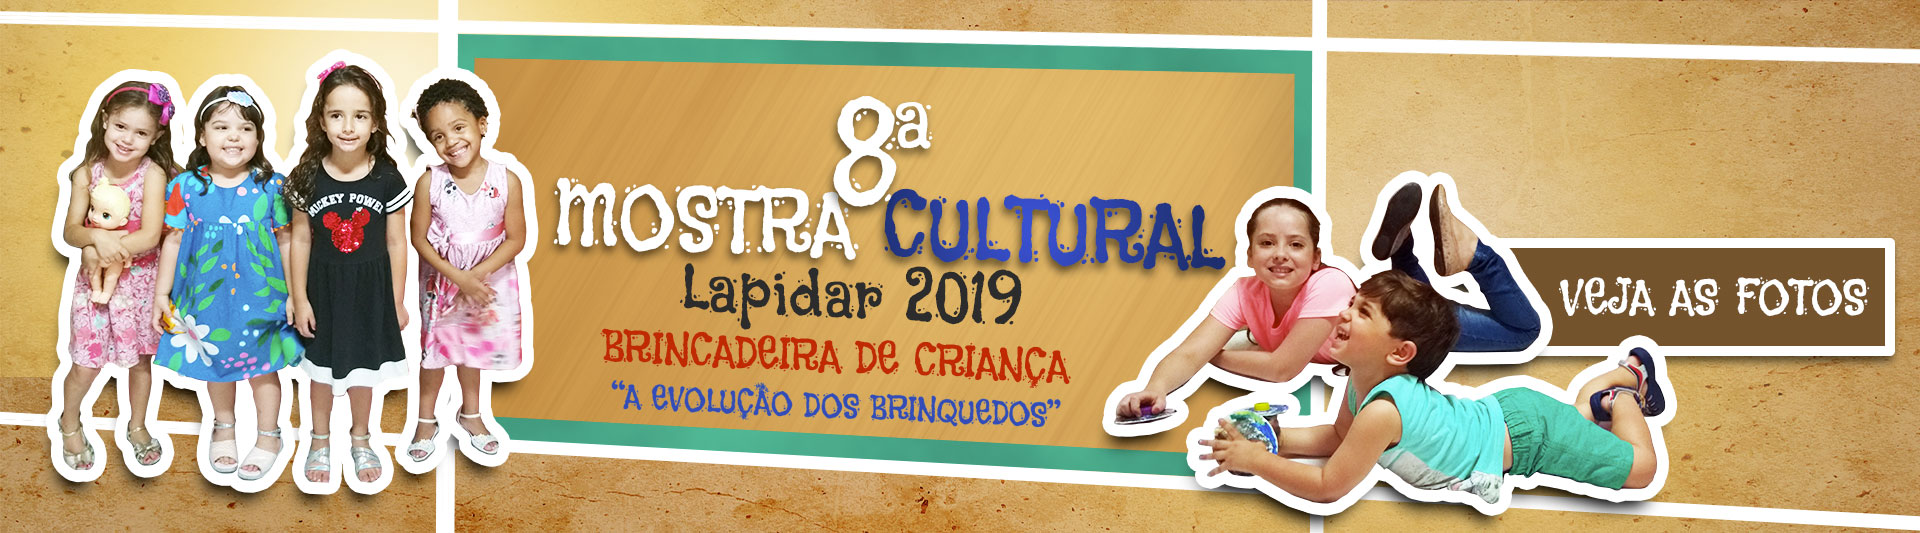 banners-mostra-2019